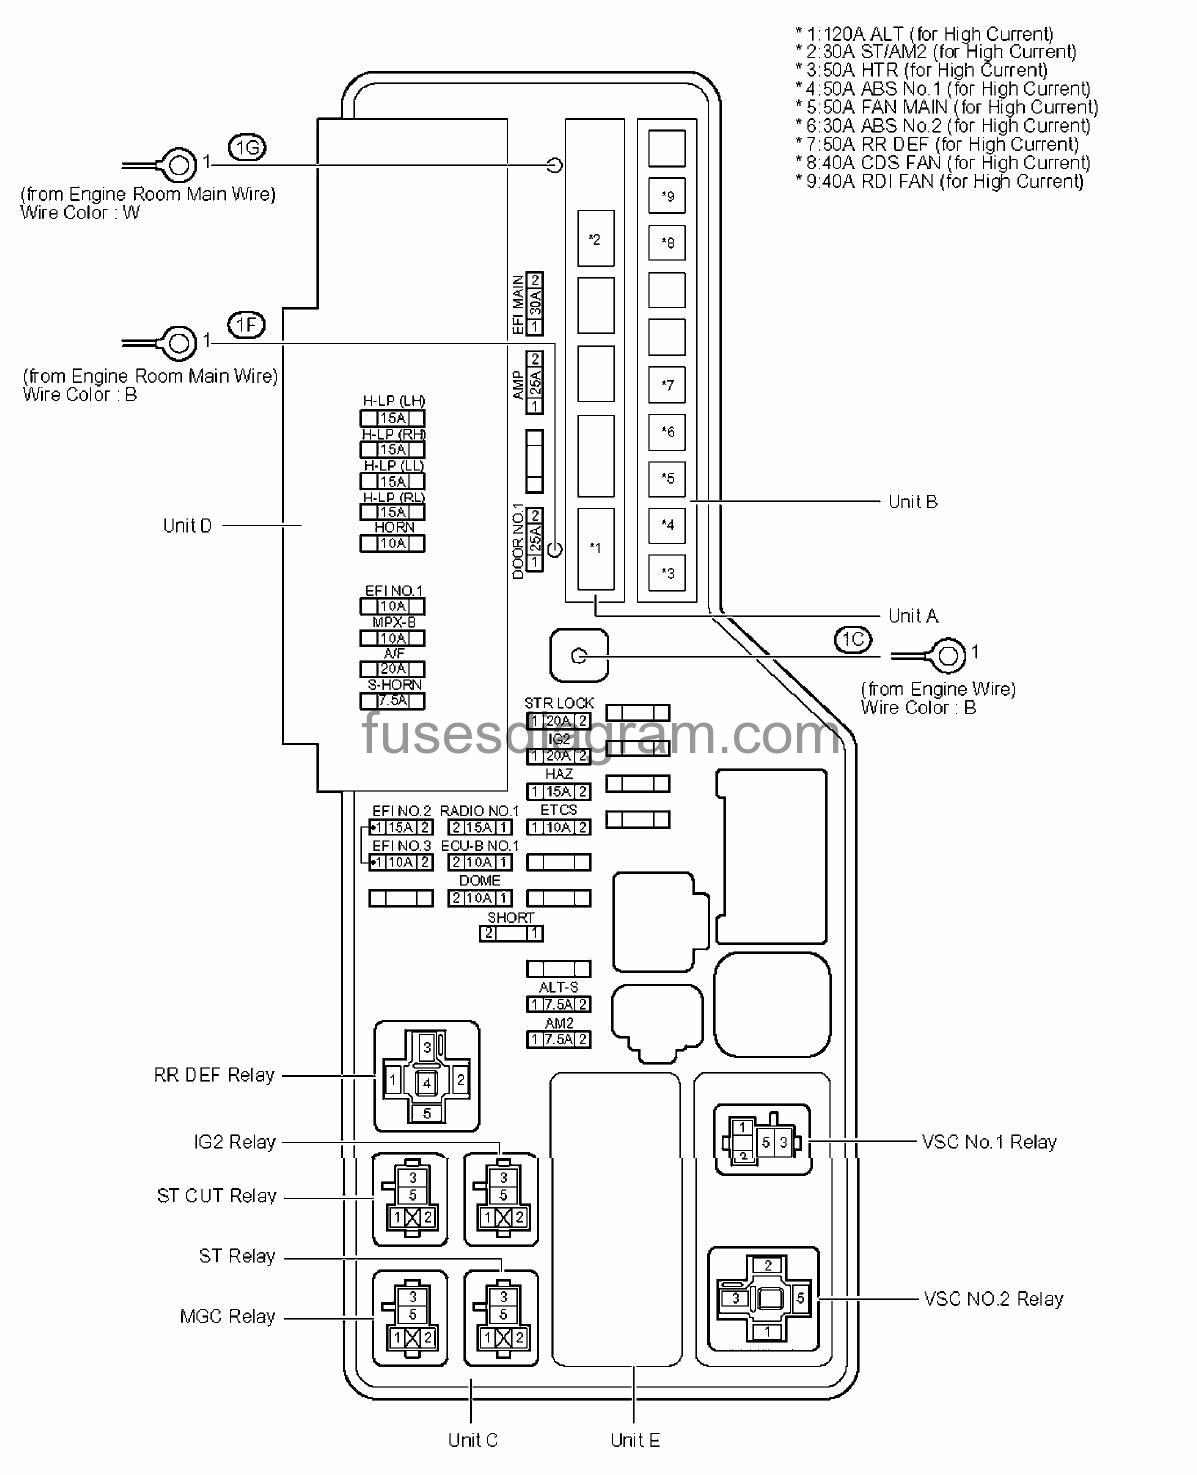 2010 toyota camry fuse box diagram 34 wiring diagram [ 1197 x 1475 Pixel ]